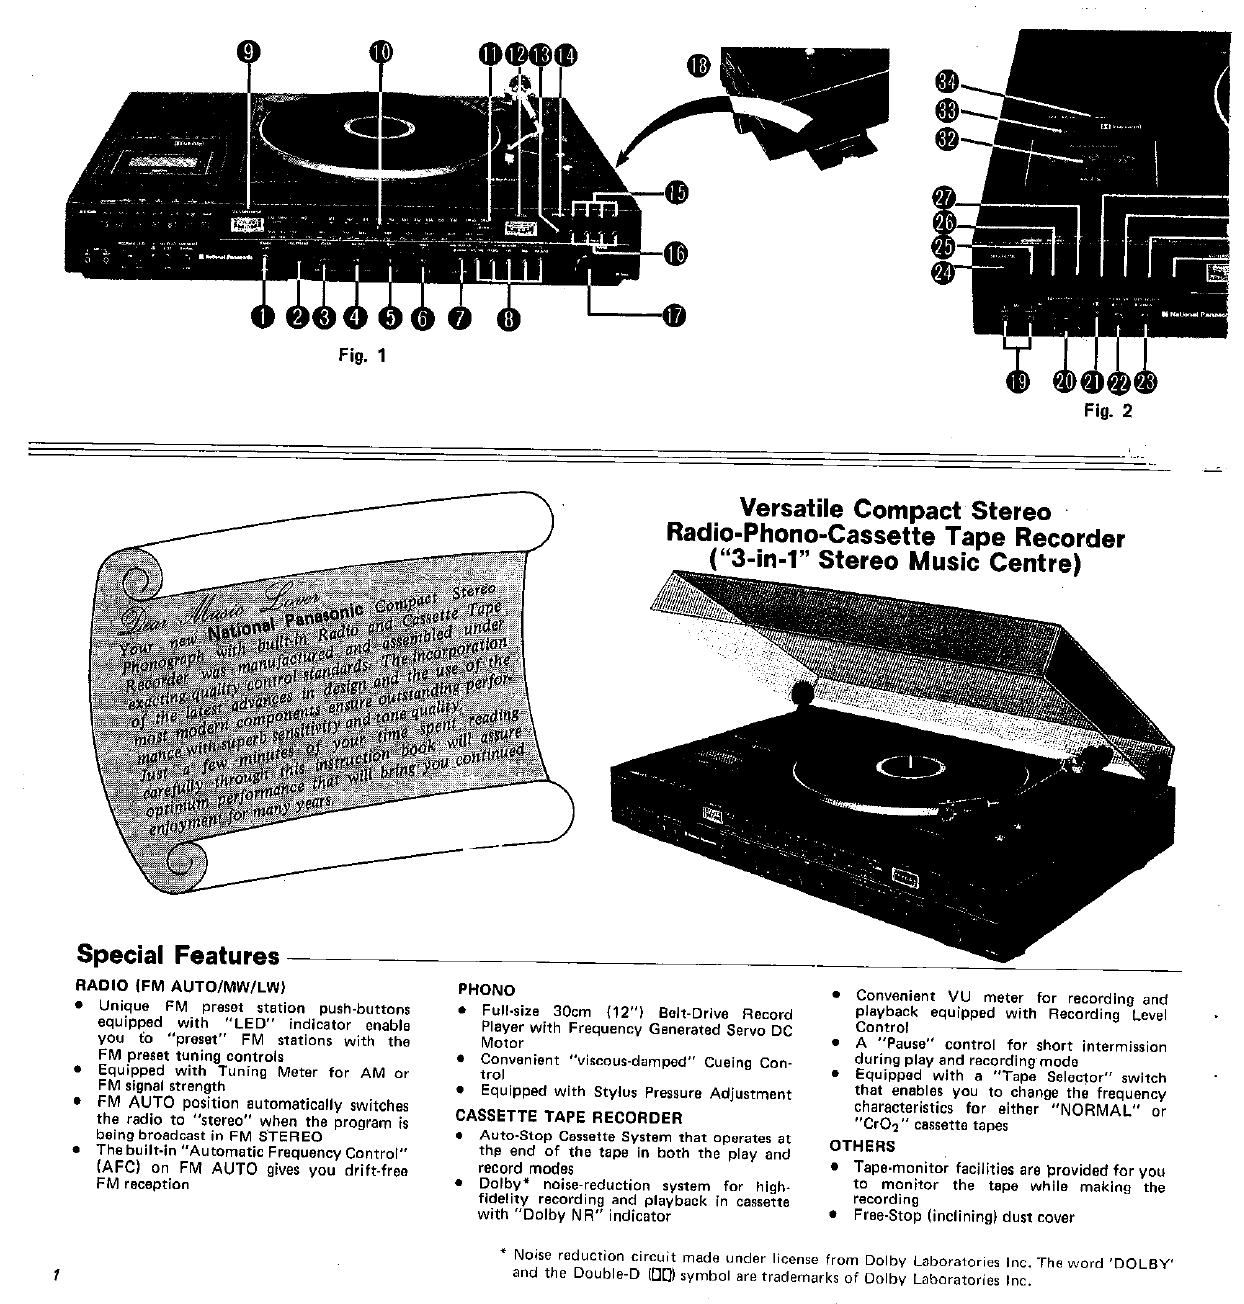 Manual Panasonic Sg3060 Page 1 Of 20 English Stereo Noise Reduction Circuit Next